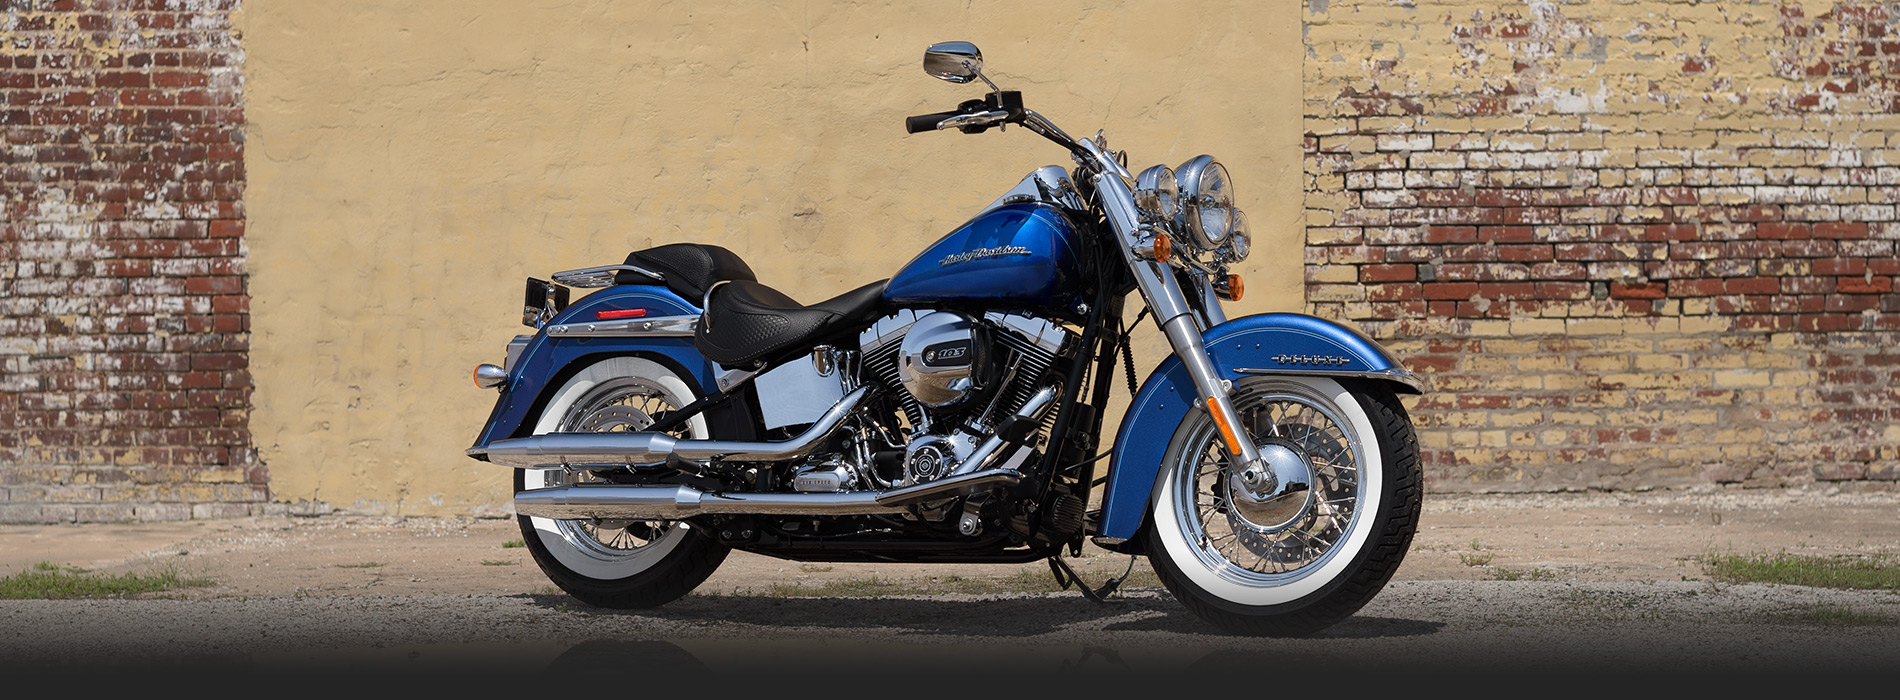 16-hd-softail-deluxe-1